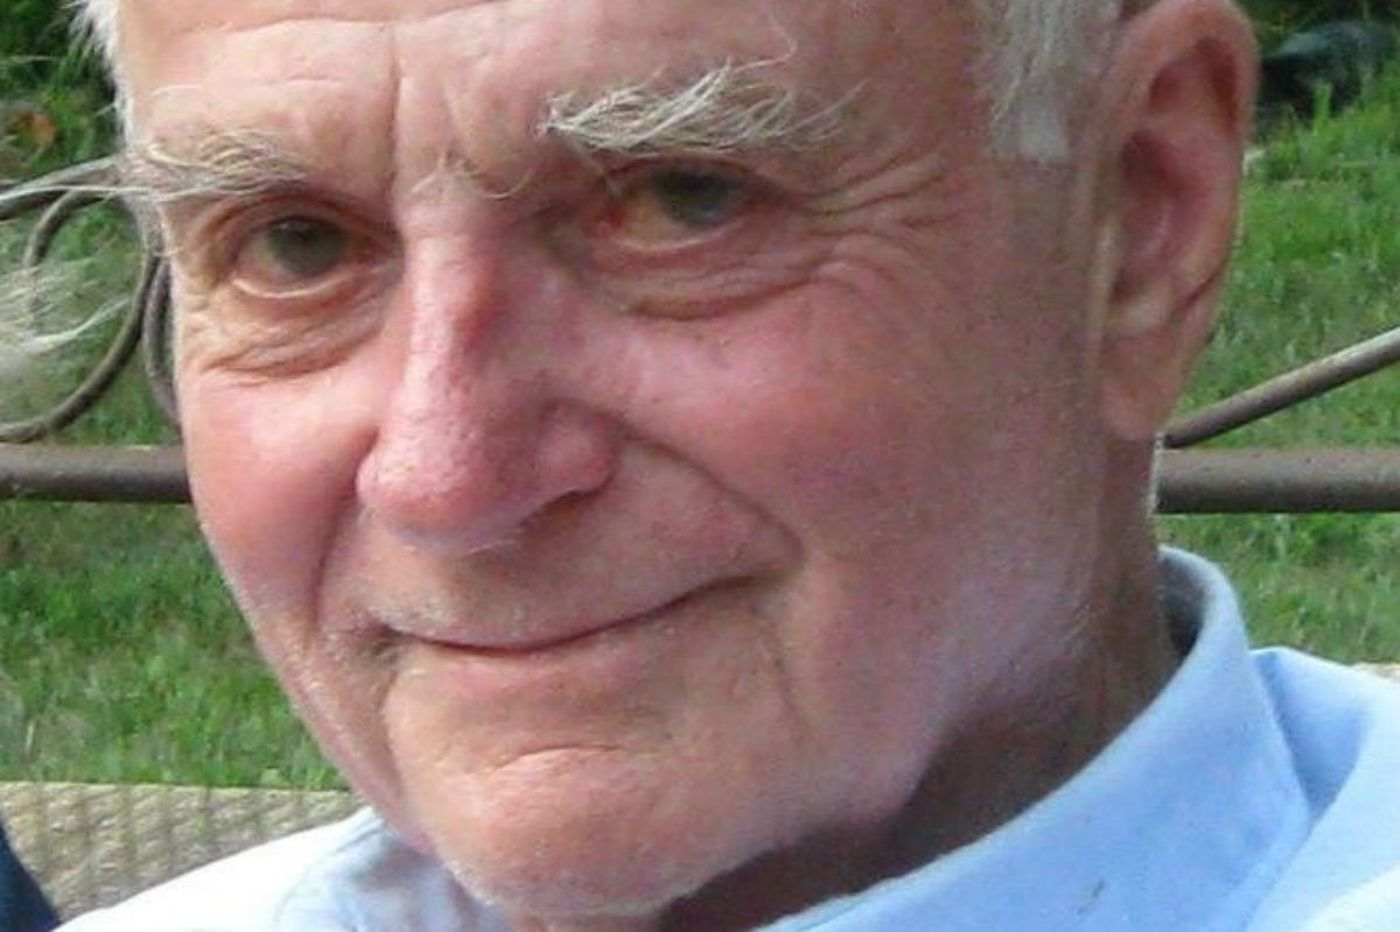 David Iams, 79, former Inquirer society columnist